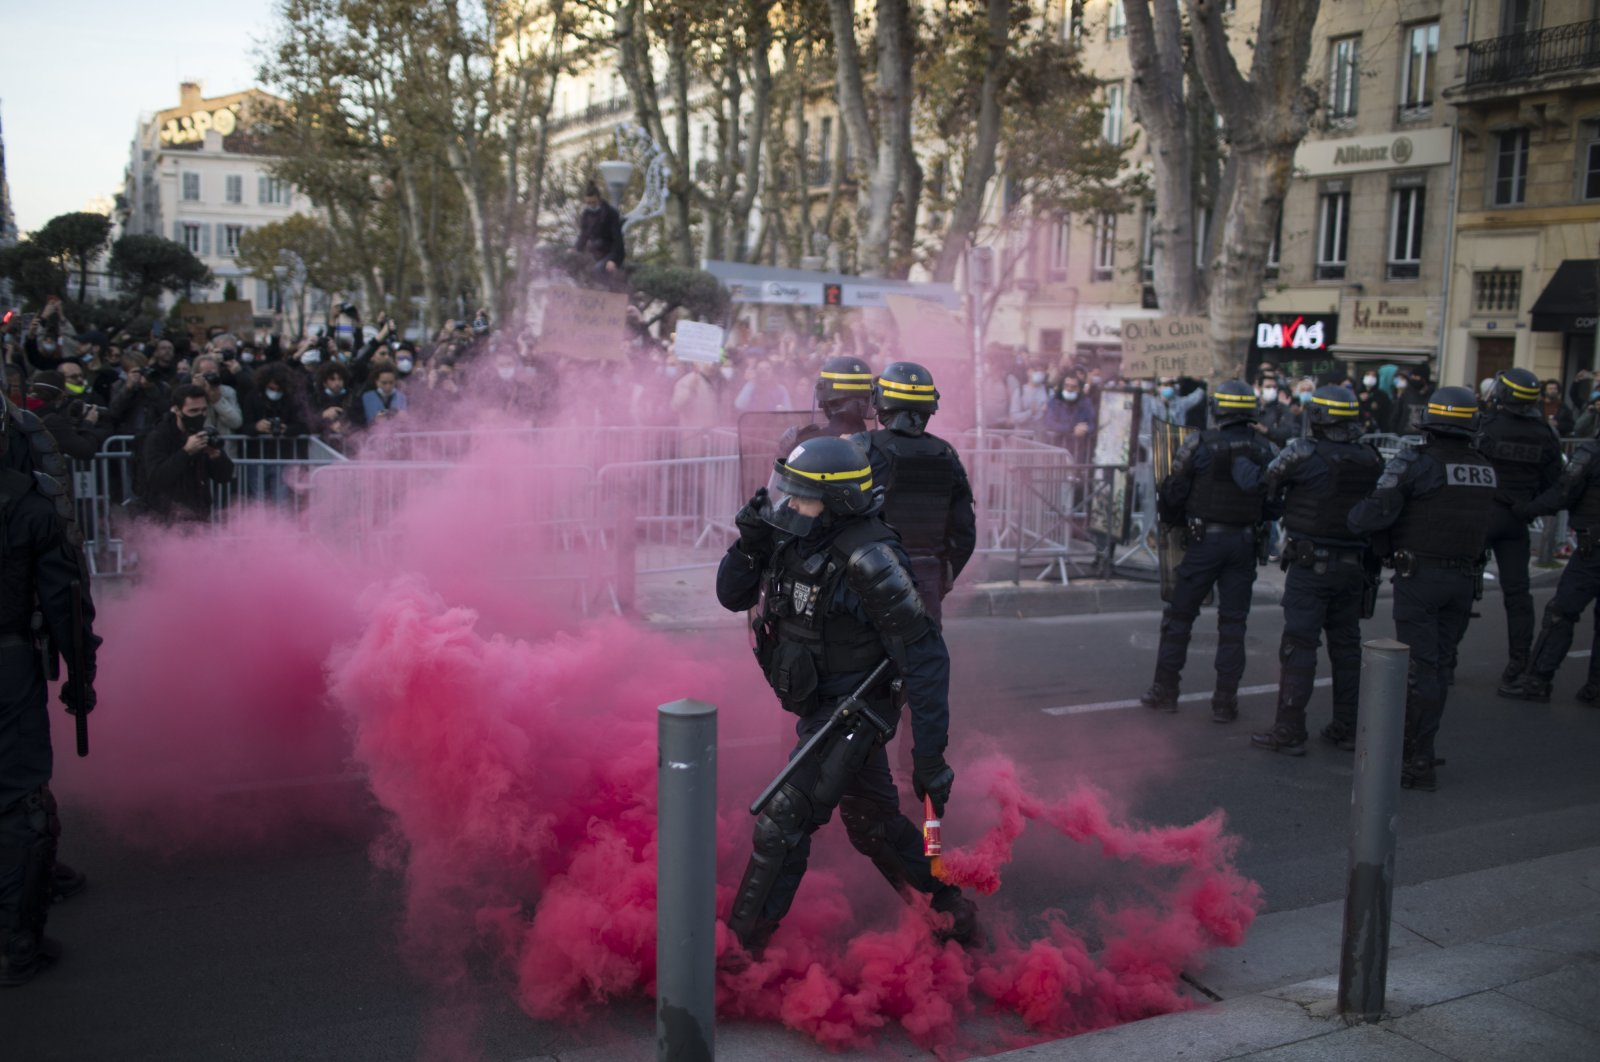 A French riot police officer clears a smoke flare thrown by protesters during a demonstration in Marseille, southern France, Nov. 21, 2020. (AP Photo)